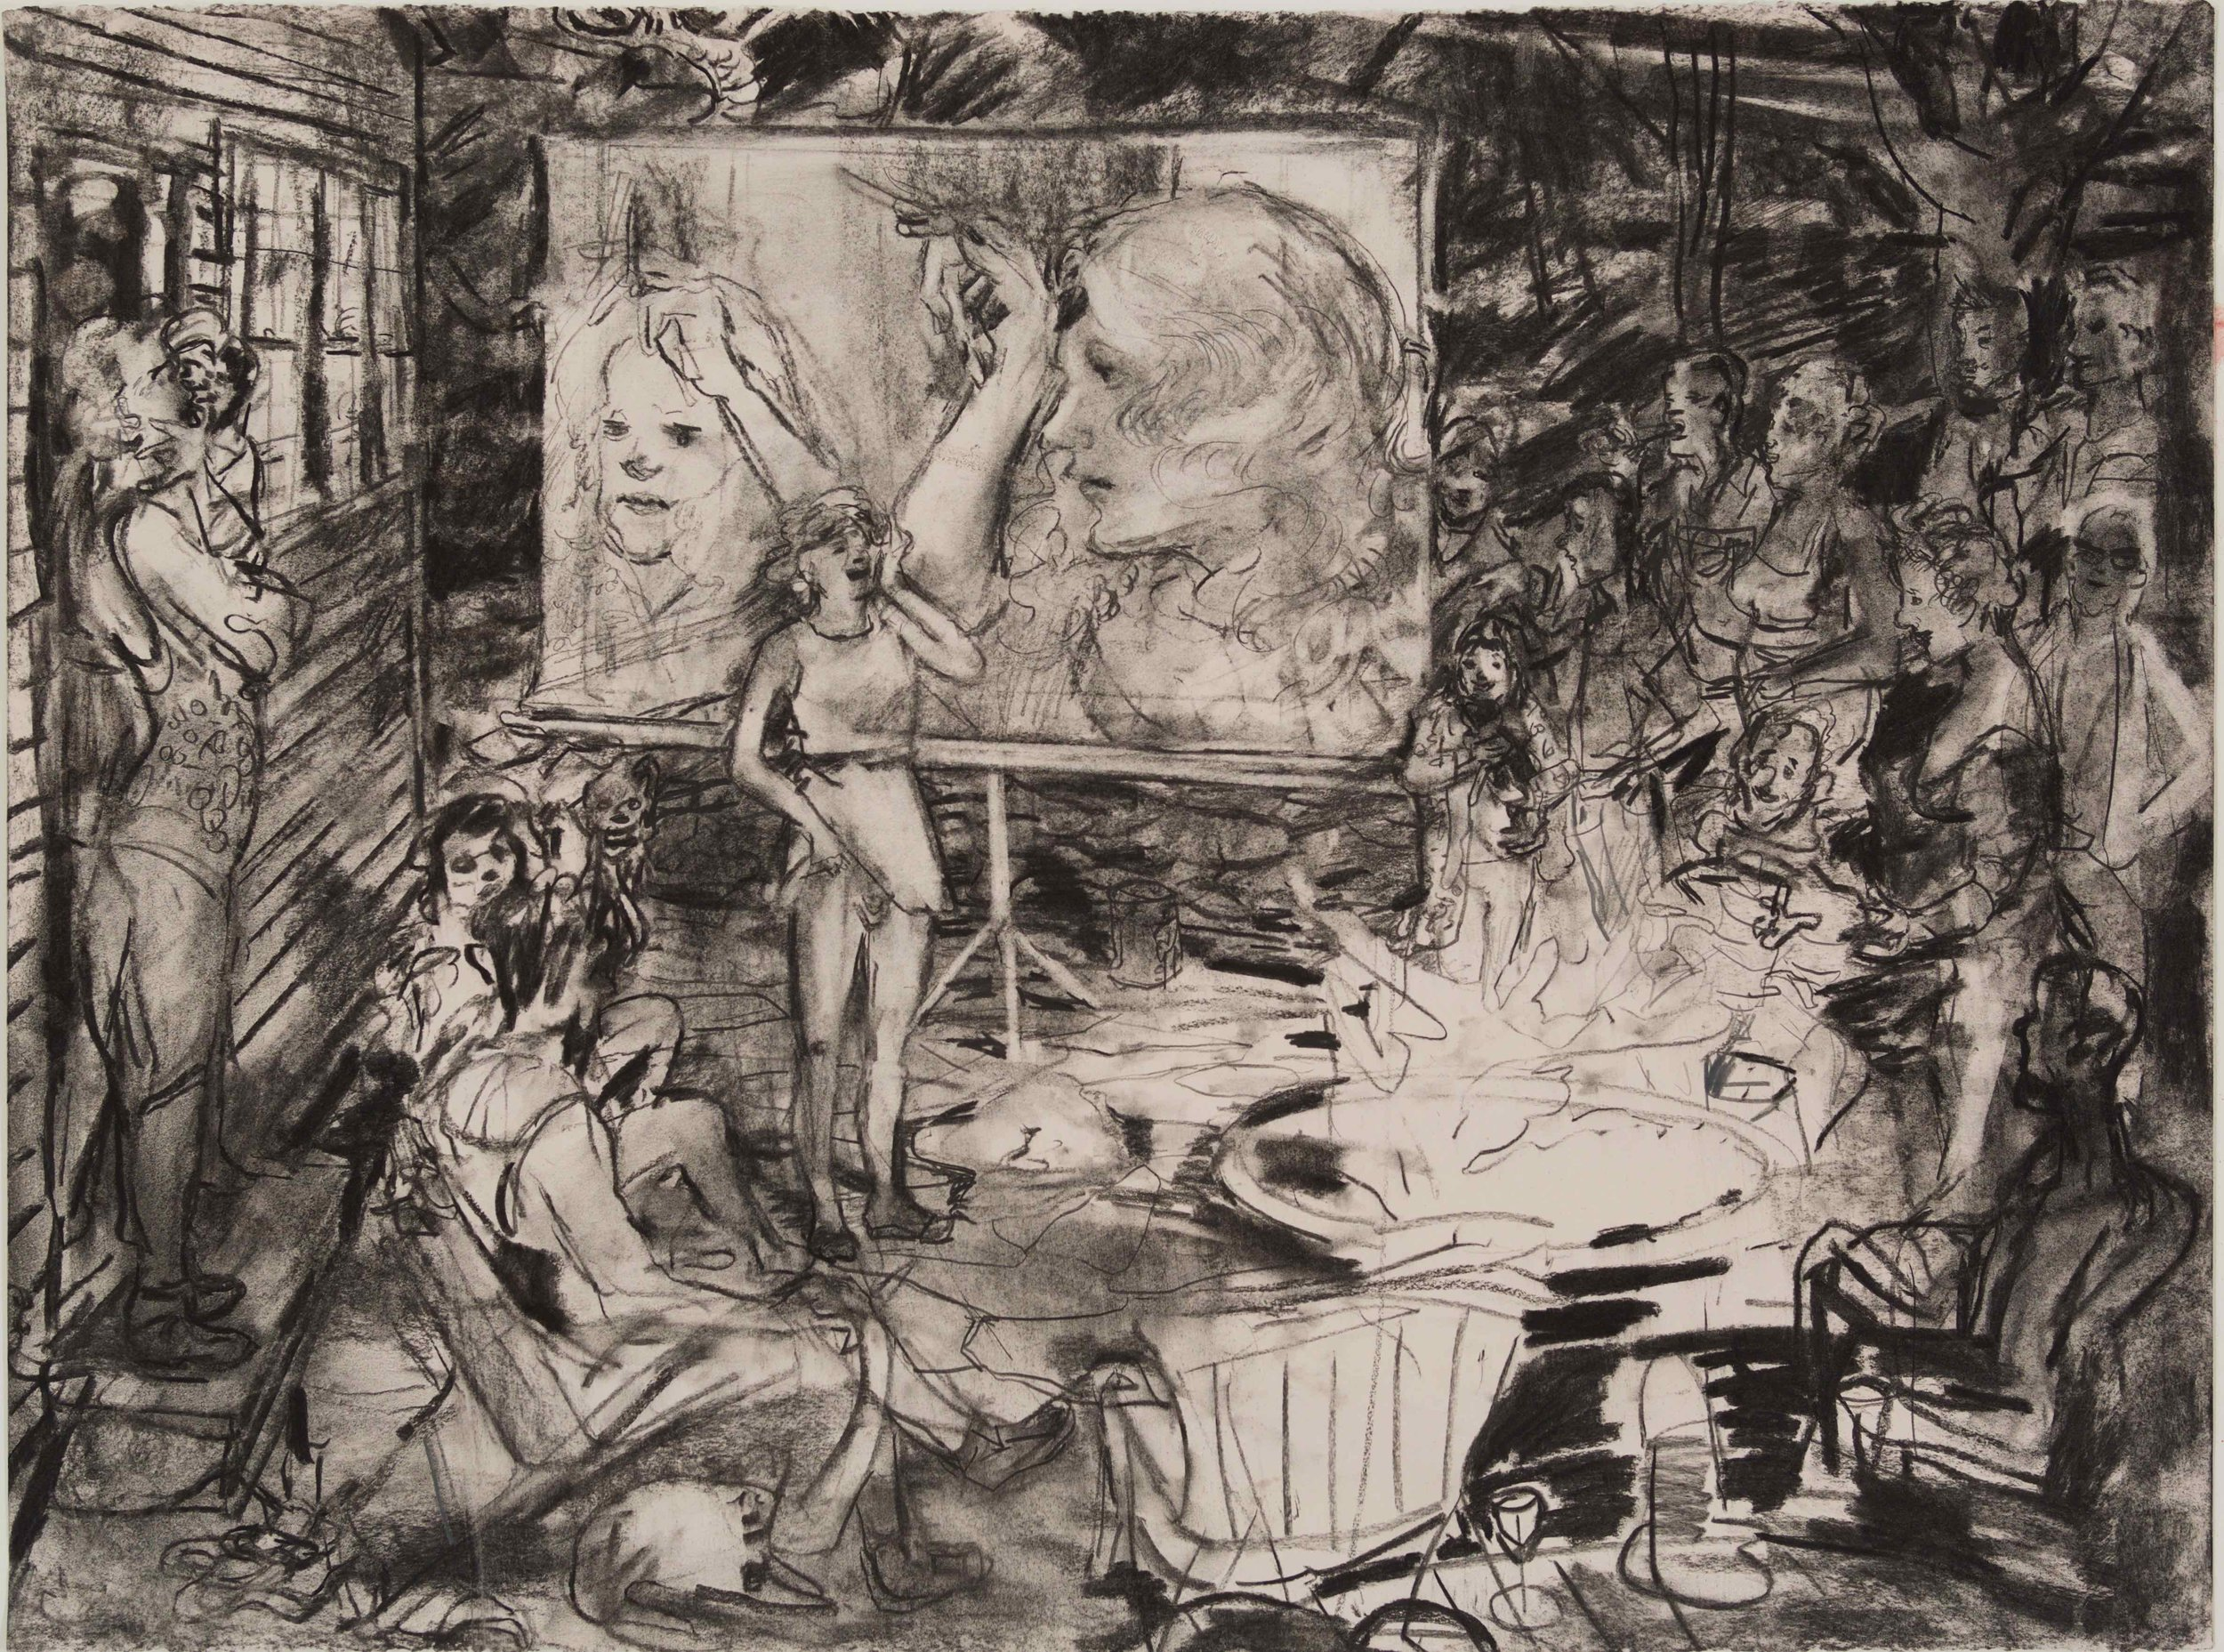 Gena School charcoal 28 by 40 inches 2016.jpg